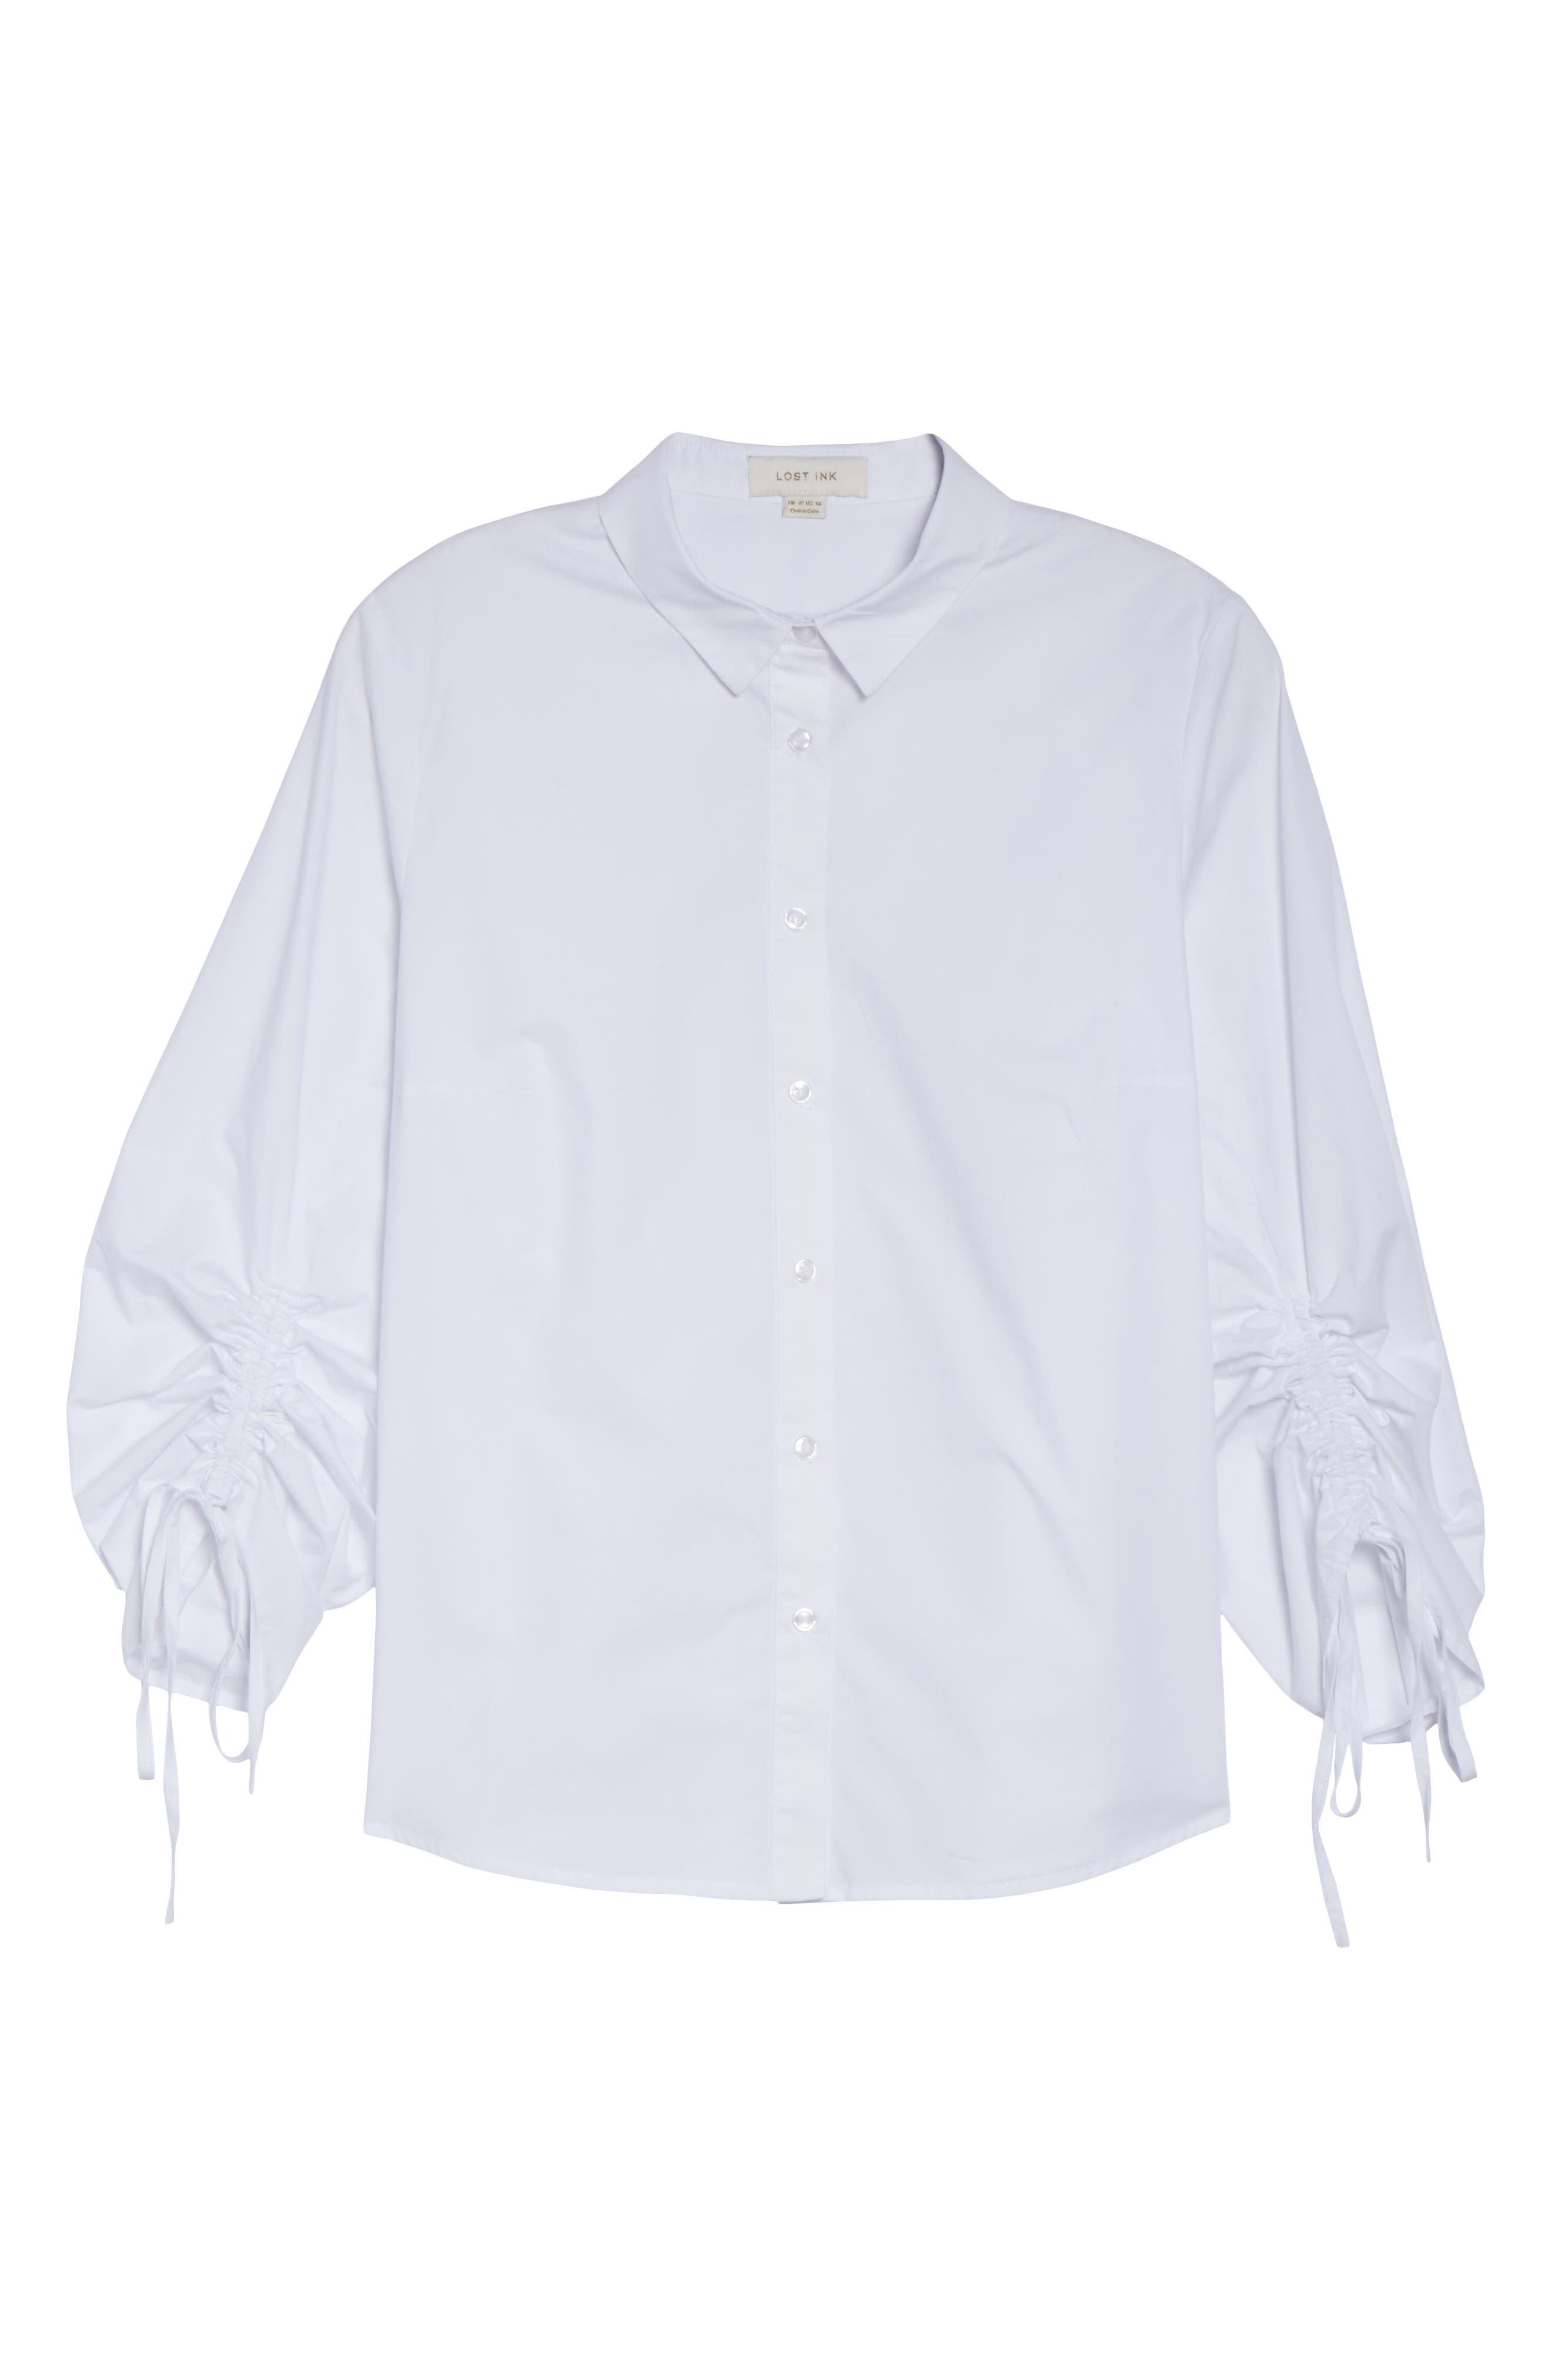 Ruched Sleeve Button-Up Shirt,                             Alternate thumbnail 6, color,                             White